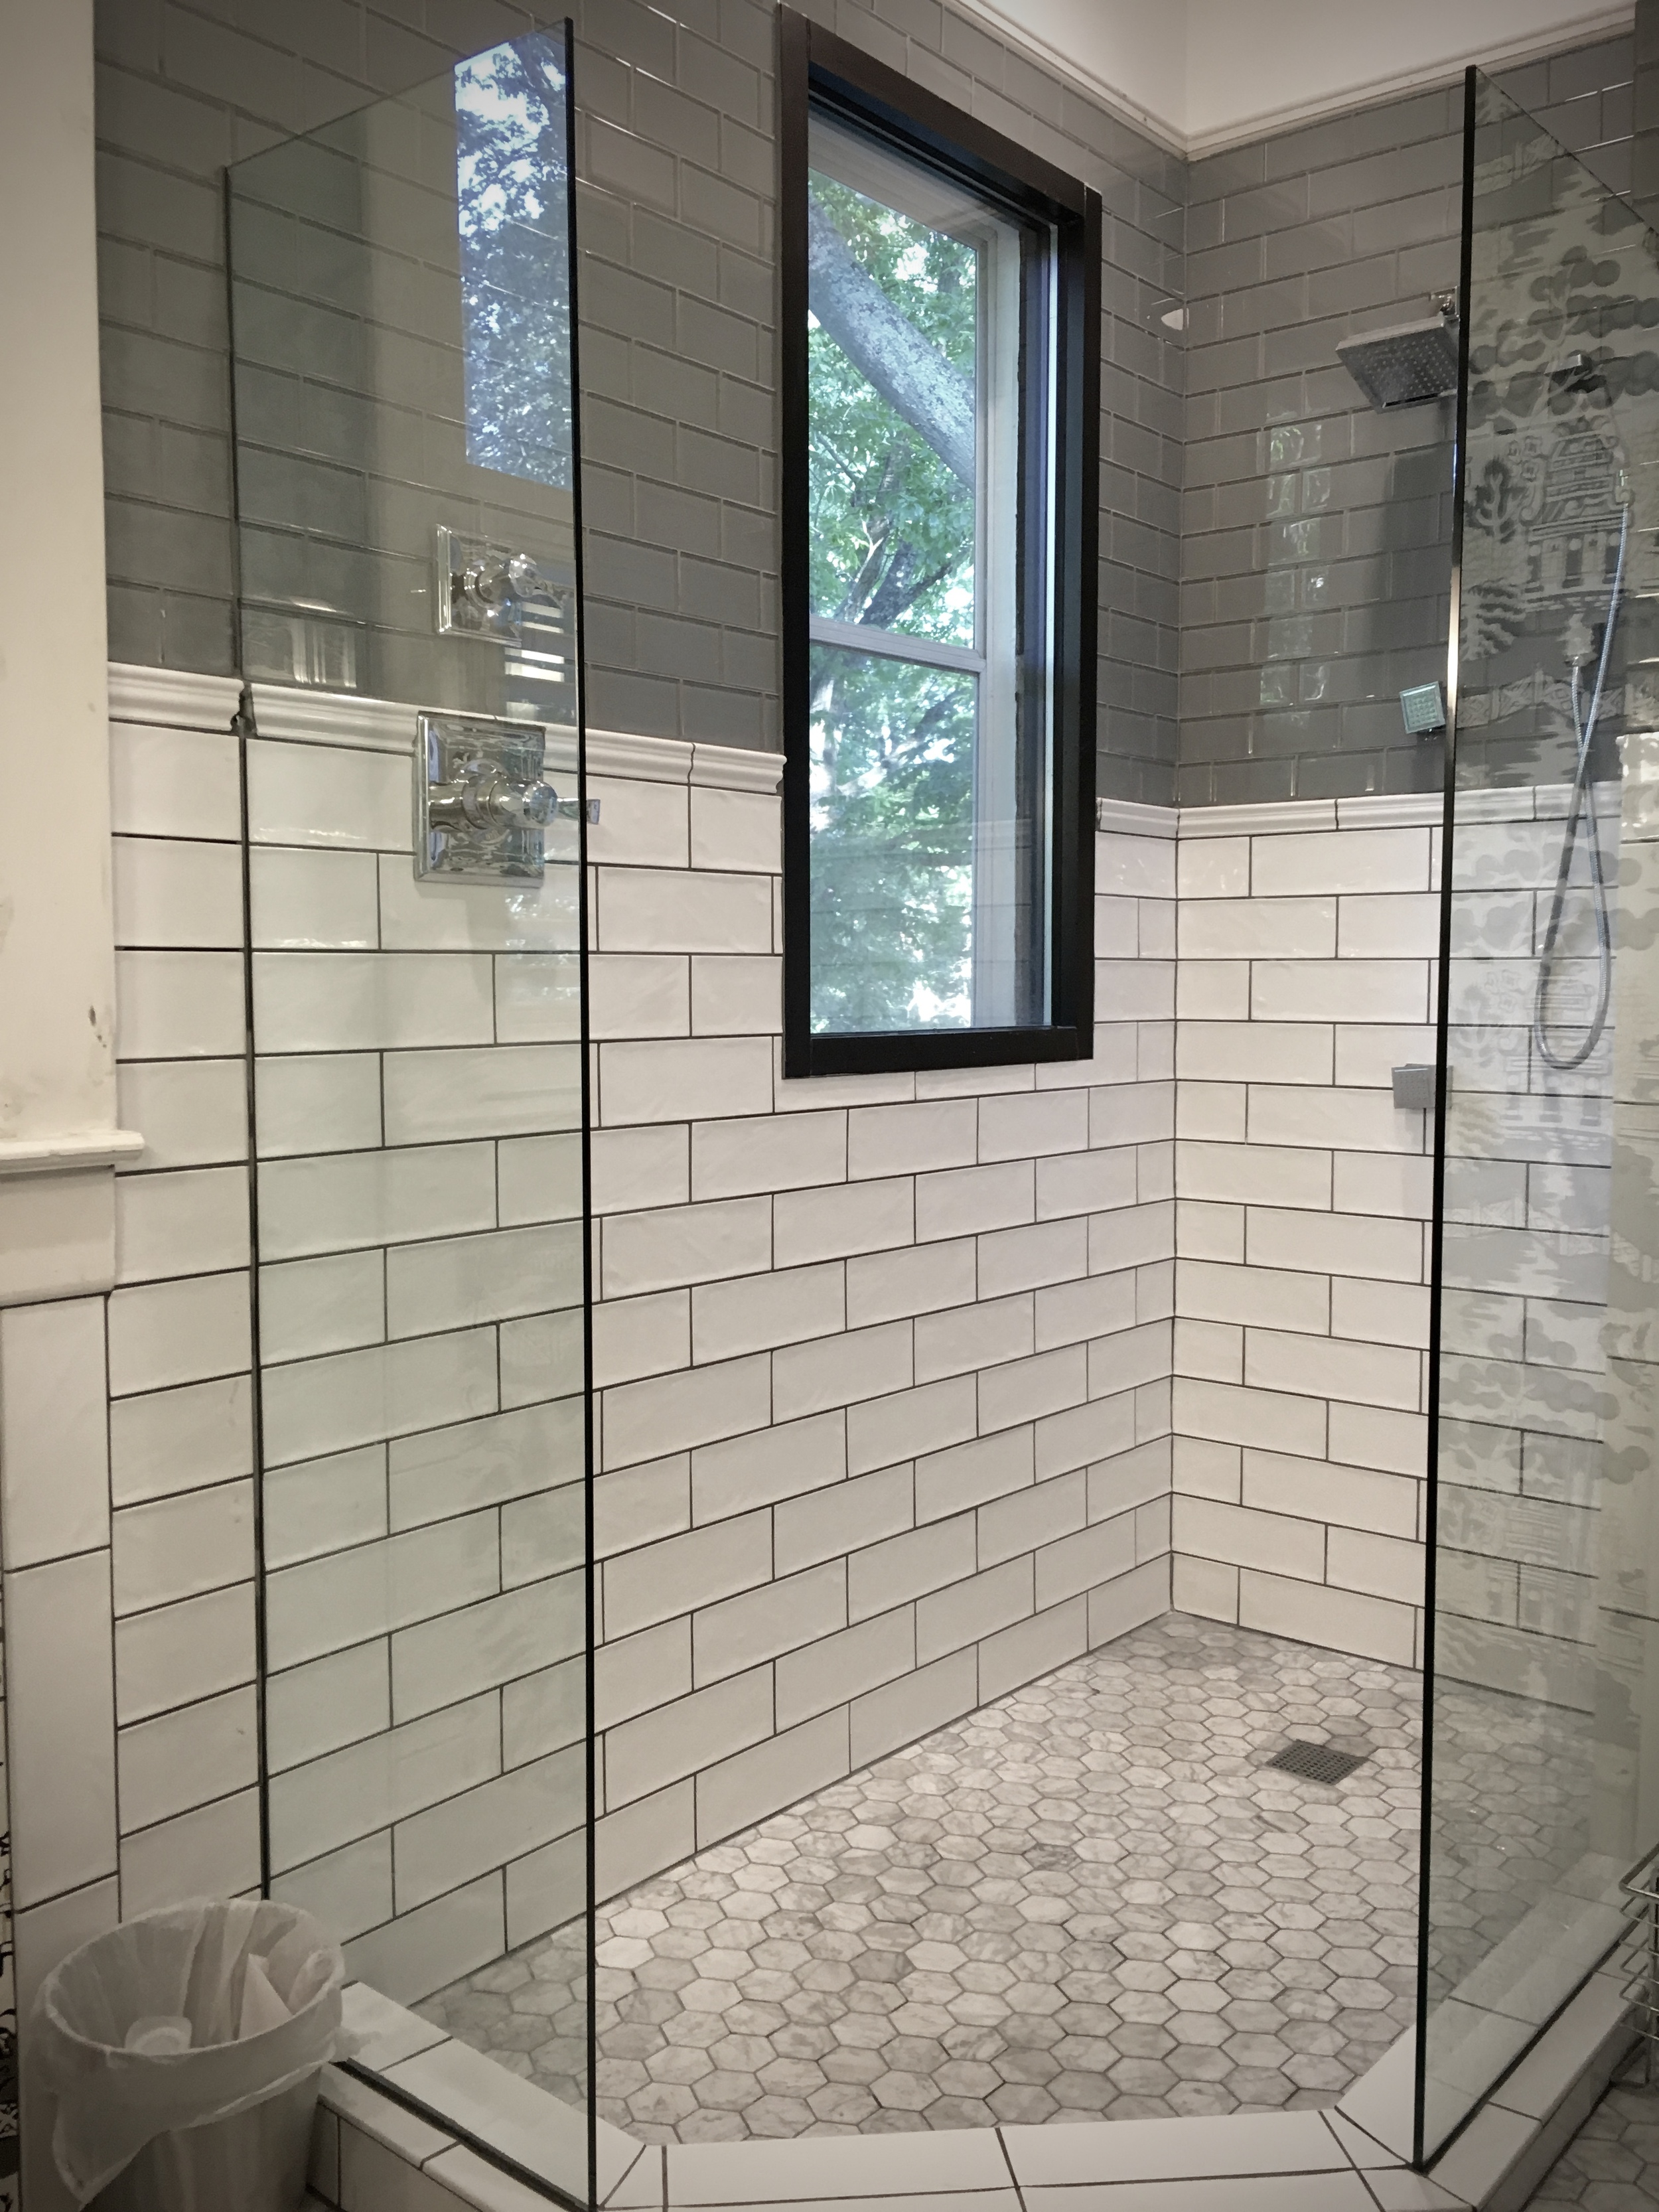 The shower is finally complete!